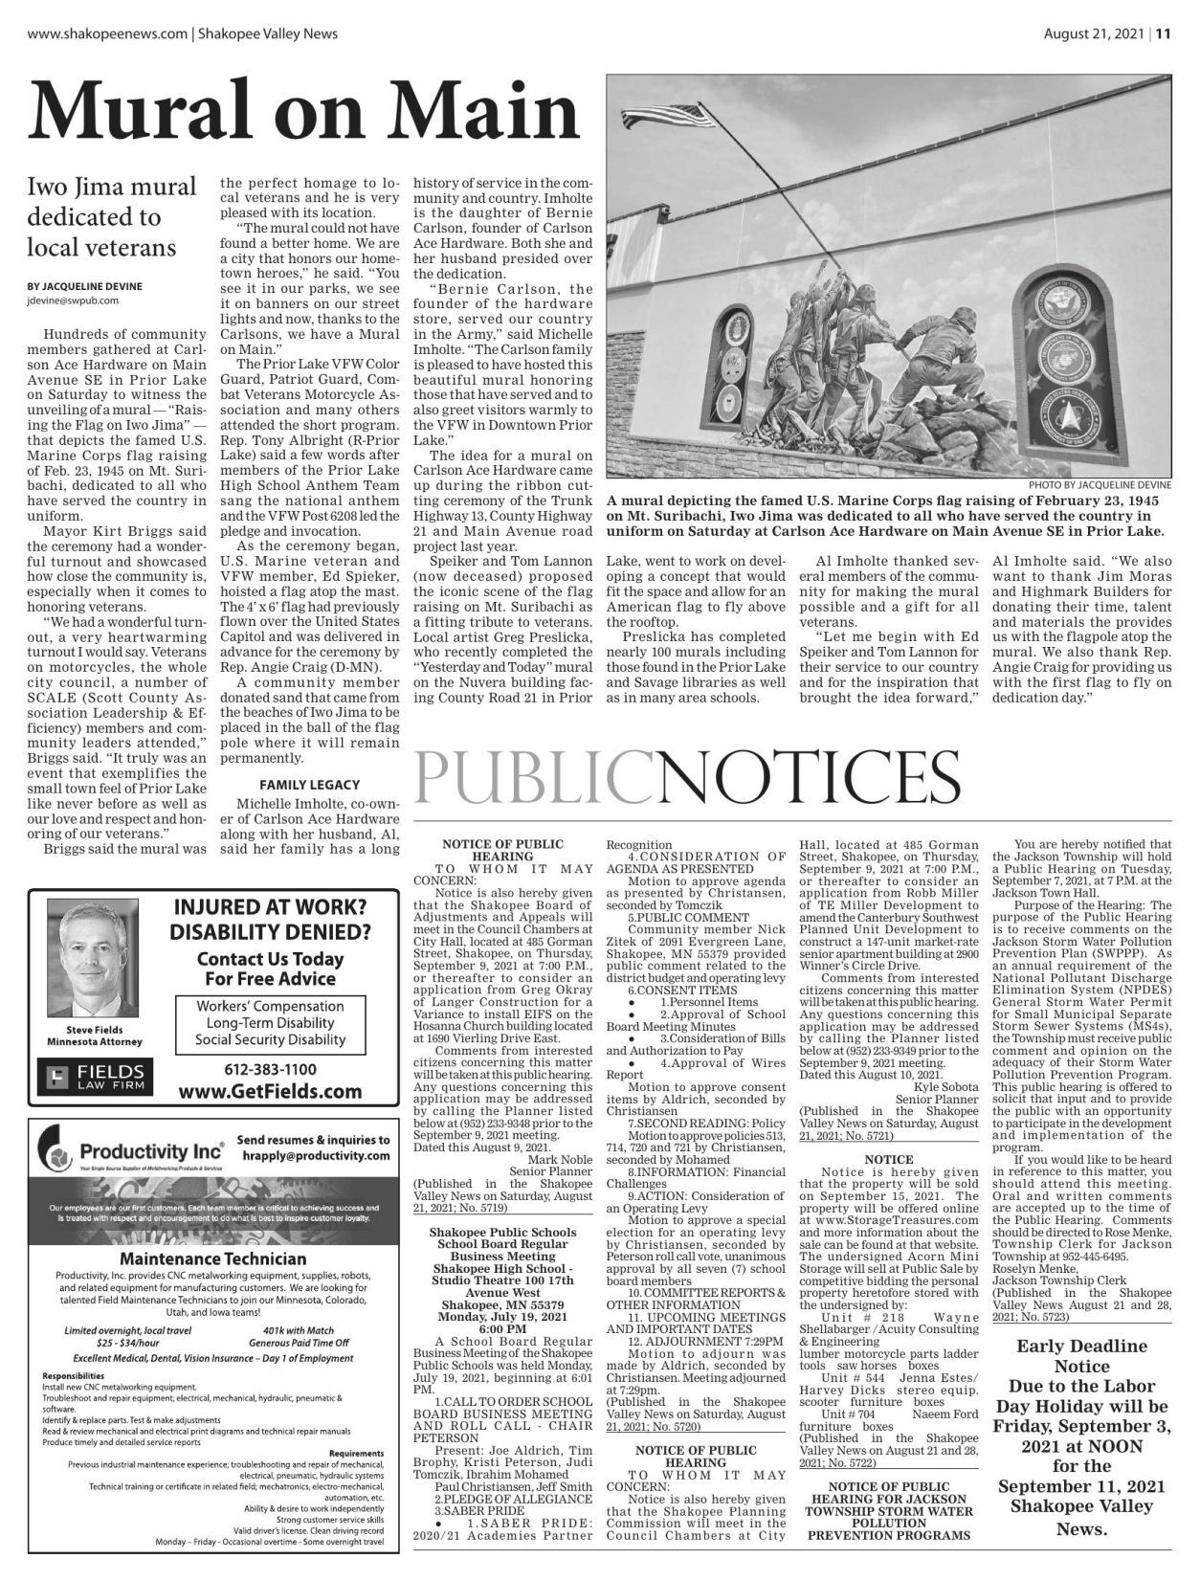 Public notices from the August 21, 2021 Shakopee Valley News